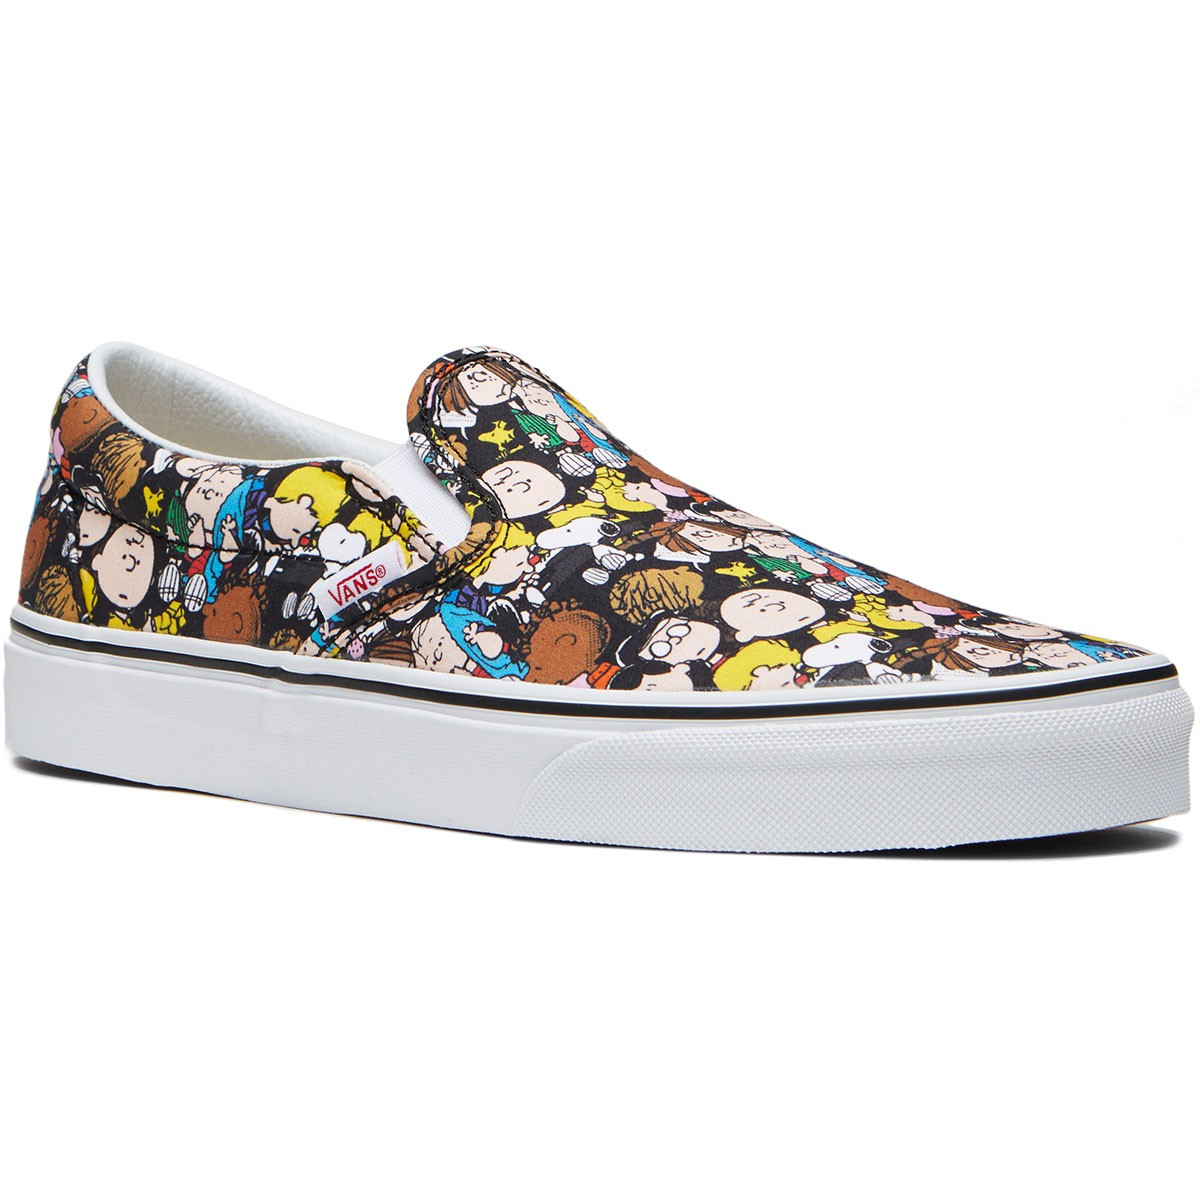 873c85697659 Vans X Peanuts Classic Slip On Shoes - The Gang Black - 8.0